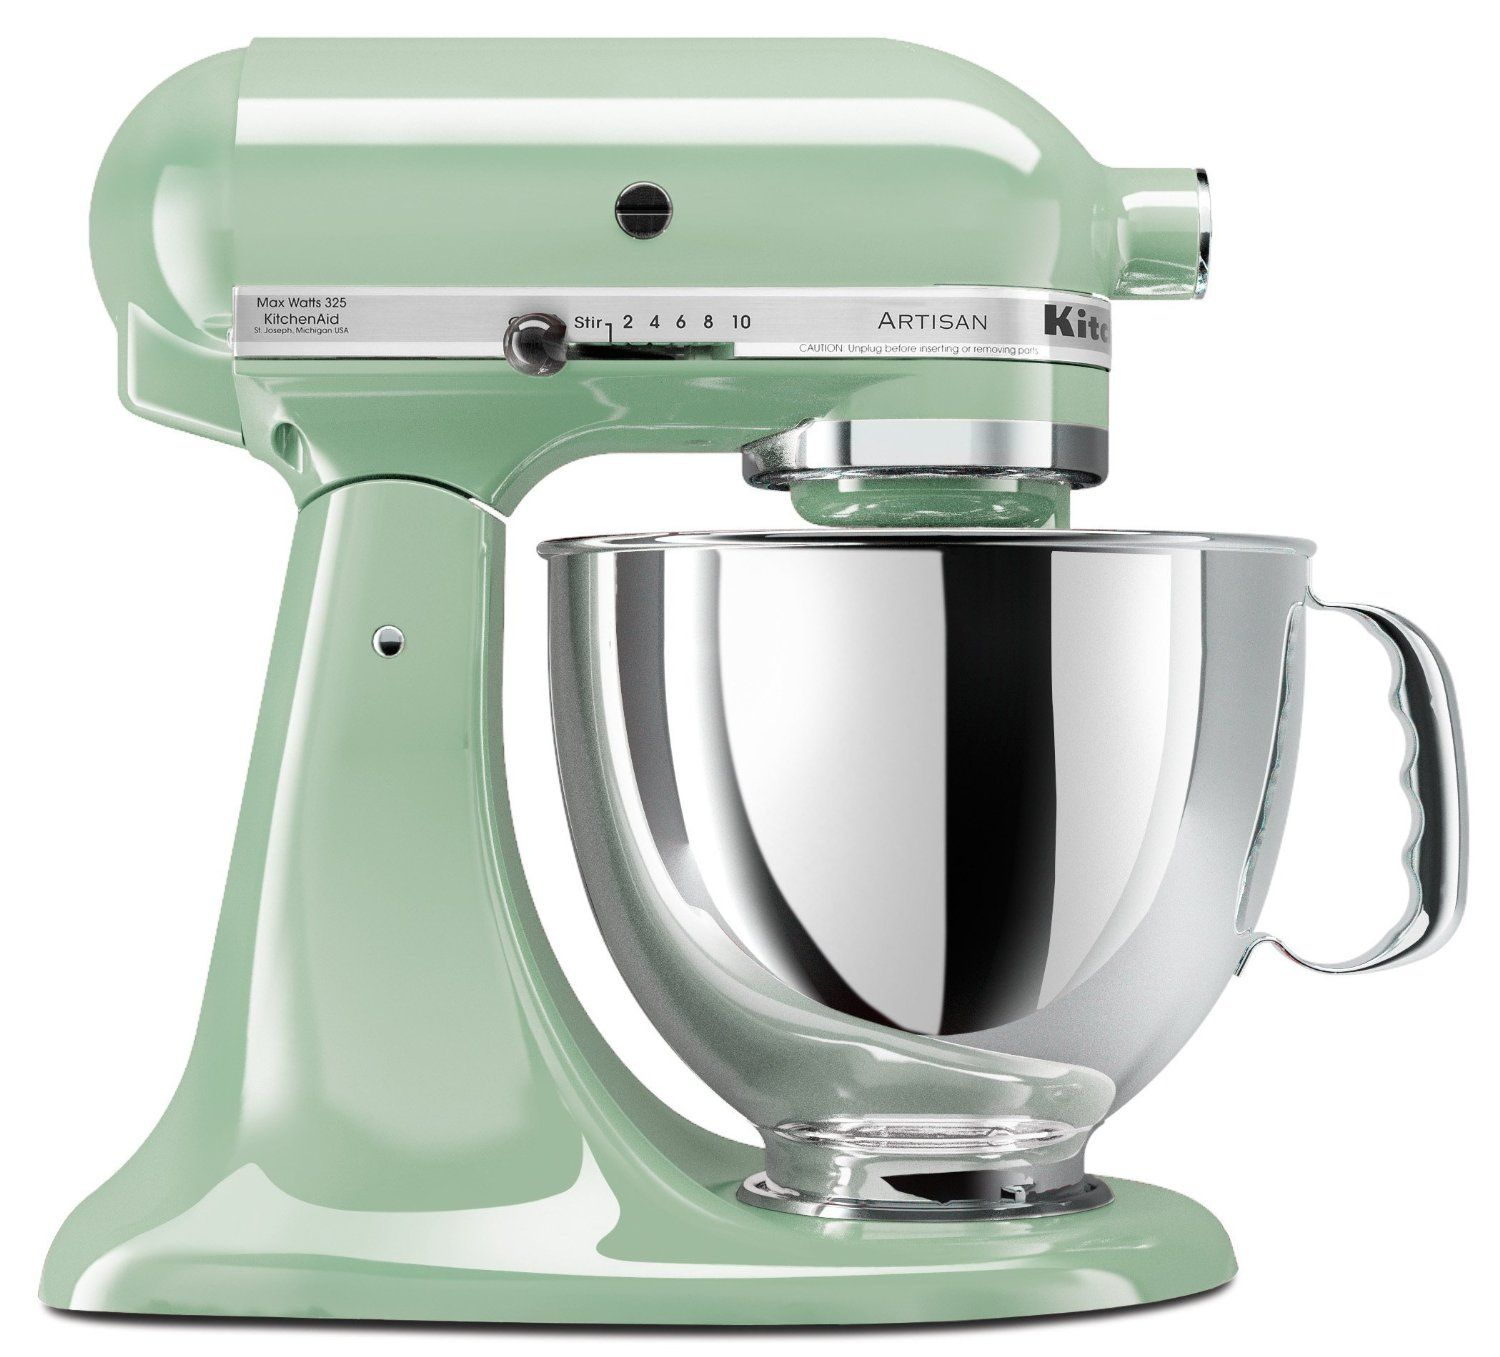 Kitchen Aid 5 Qt Mixer Cabinet Spice Rack Kitchenaid Ksm150pspt Artisan Series Quart Pistachio